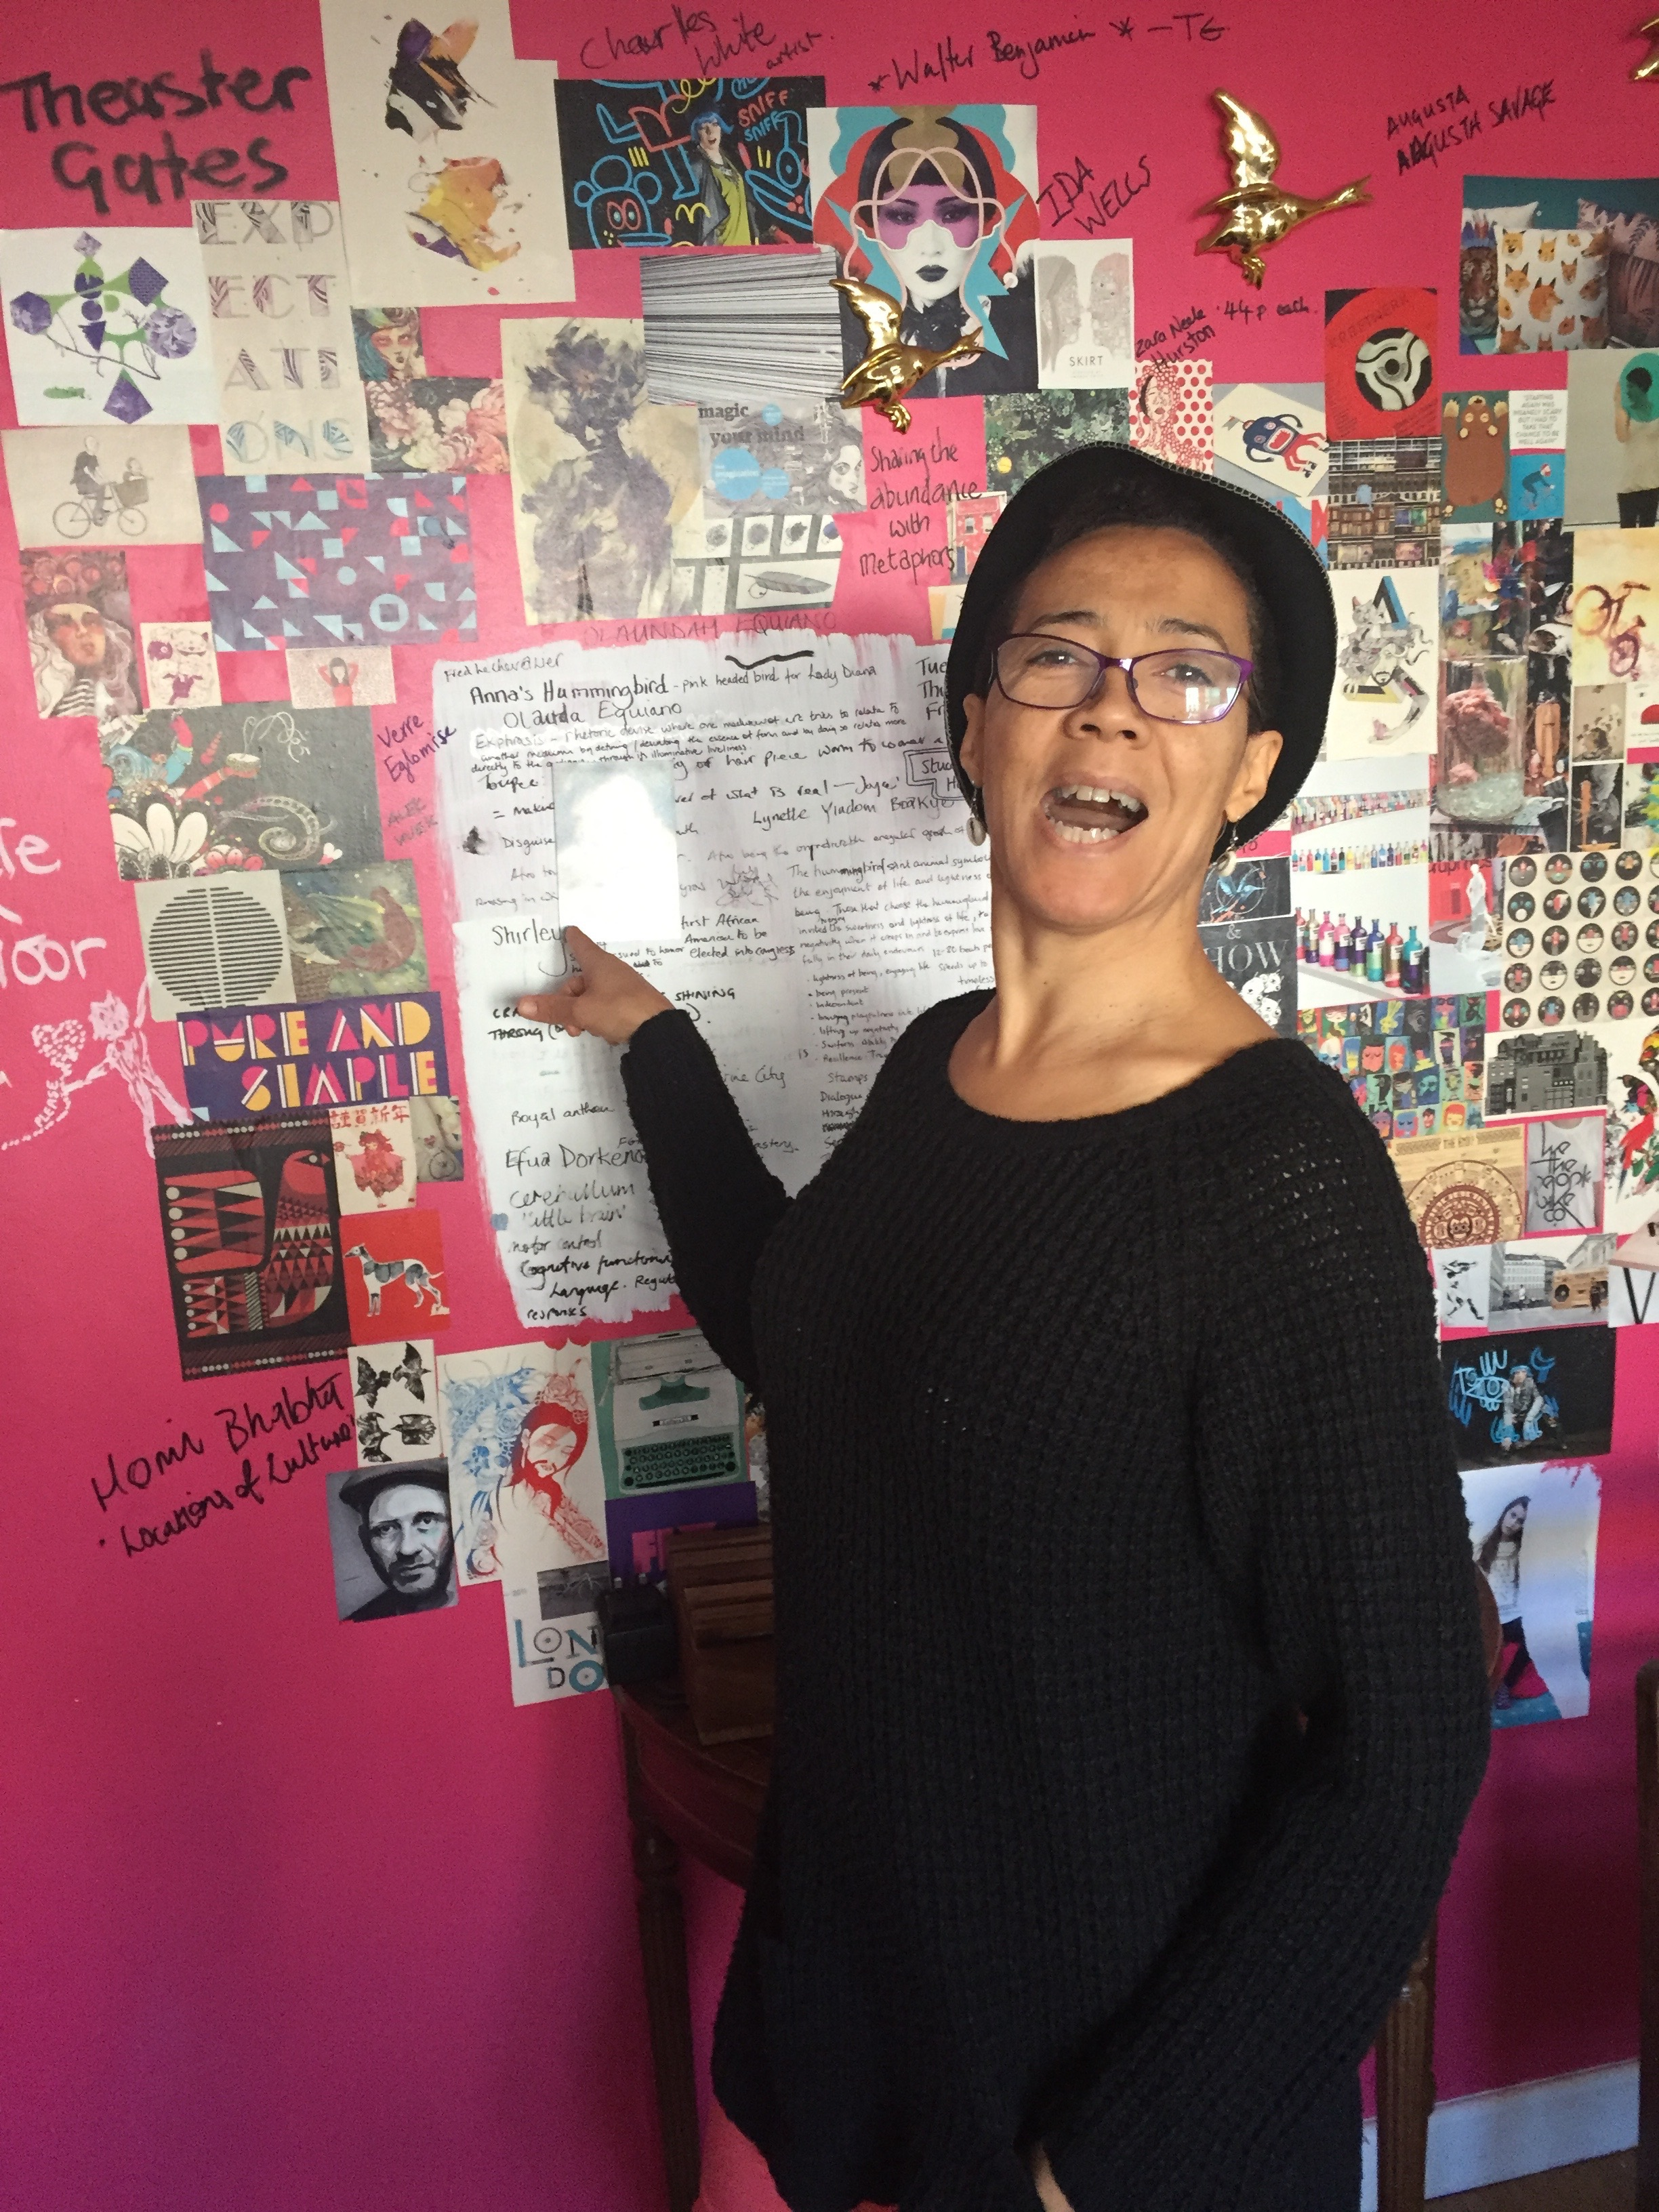 Pontificating in front of Joyces Memory wall.